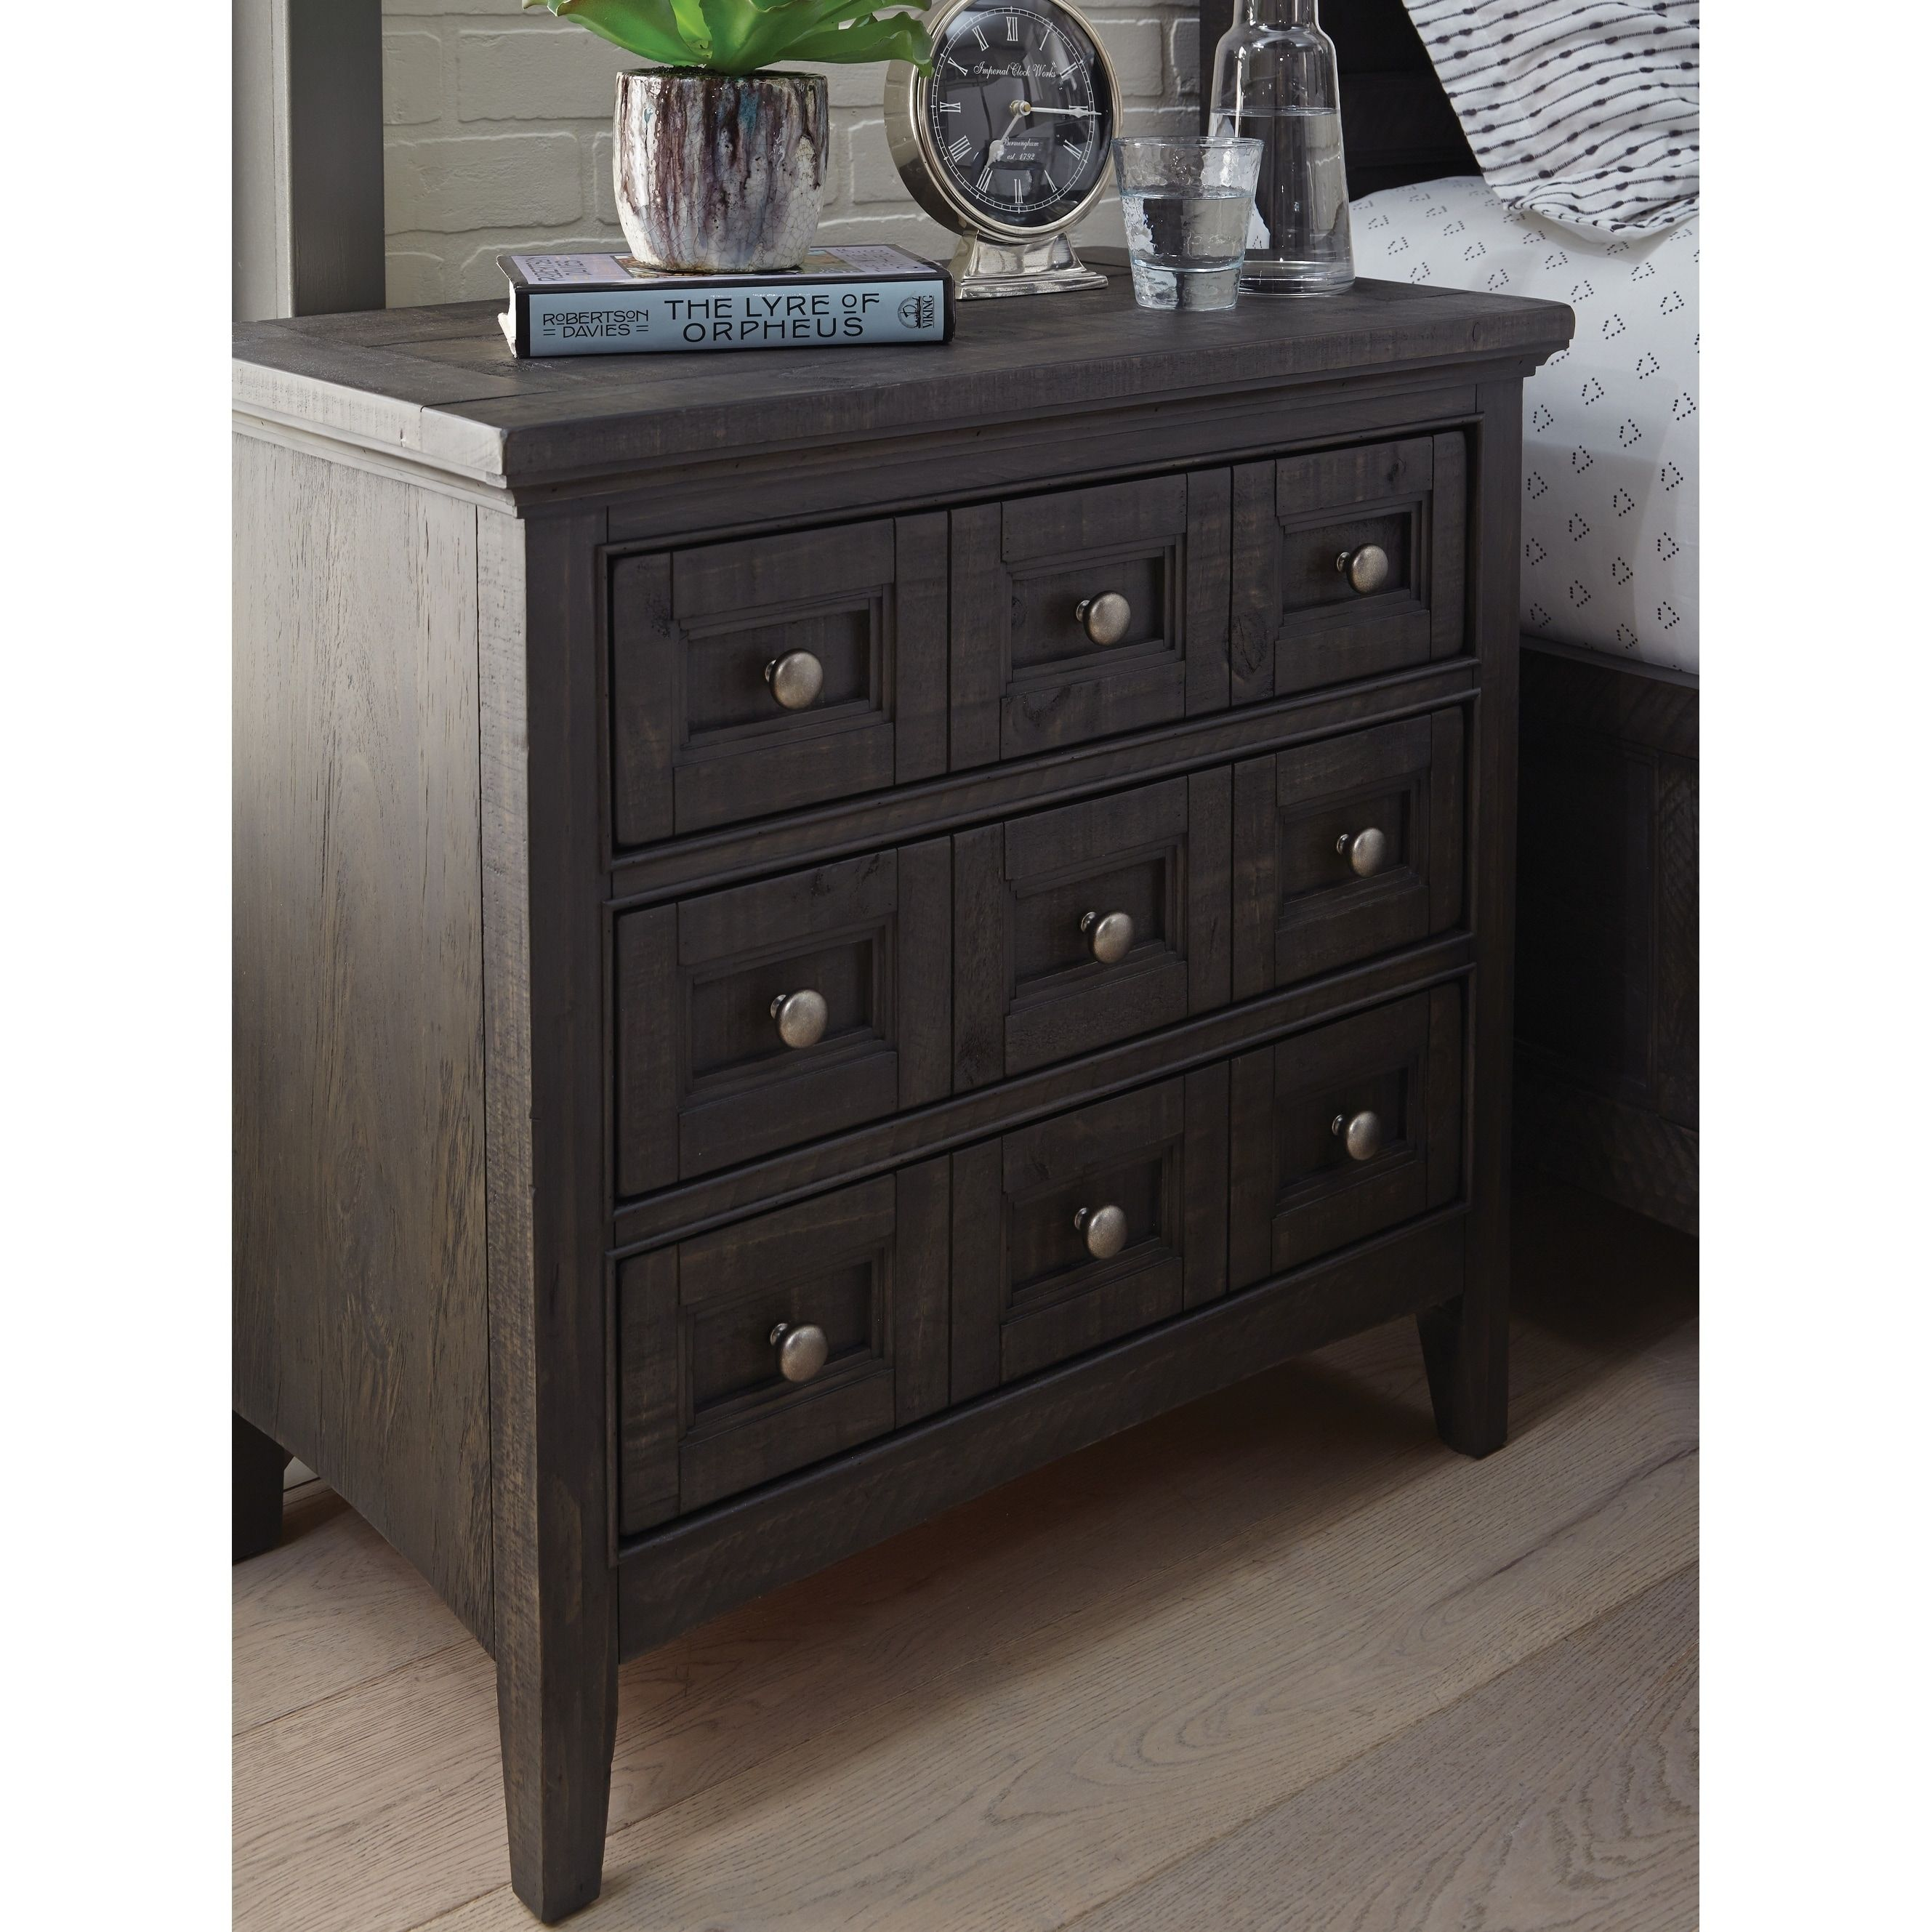 knobs for organizer clarissa darley modern combo proof target dresser outstanding pulls liners assembly drawer ellie autumn heavenly accent table full size oval garden chrome door